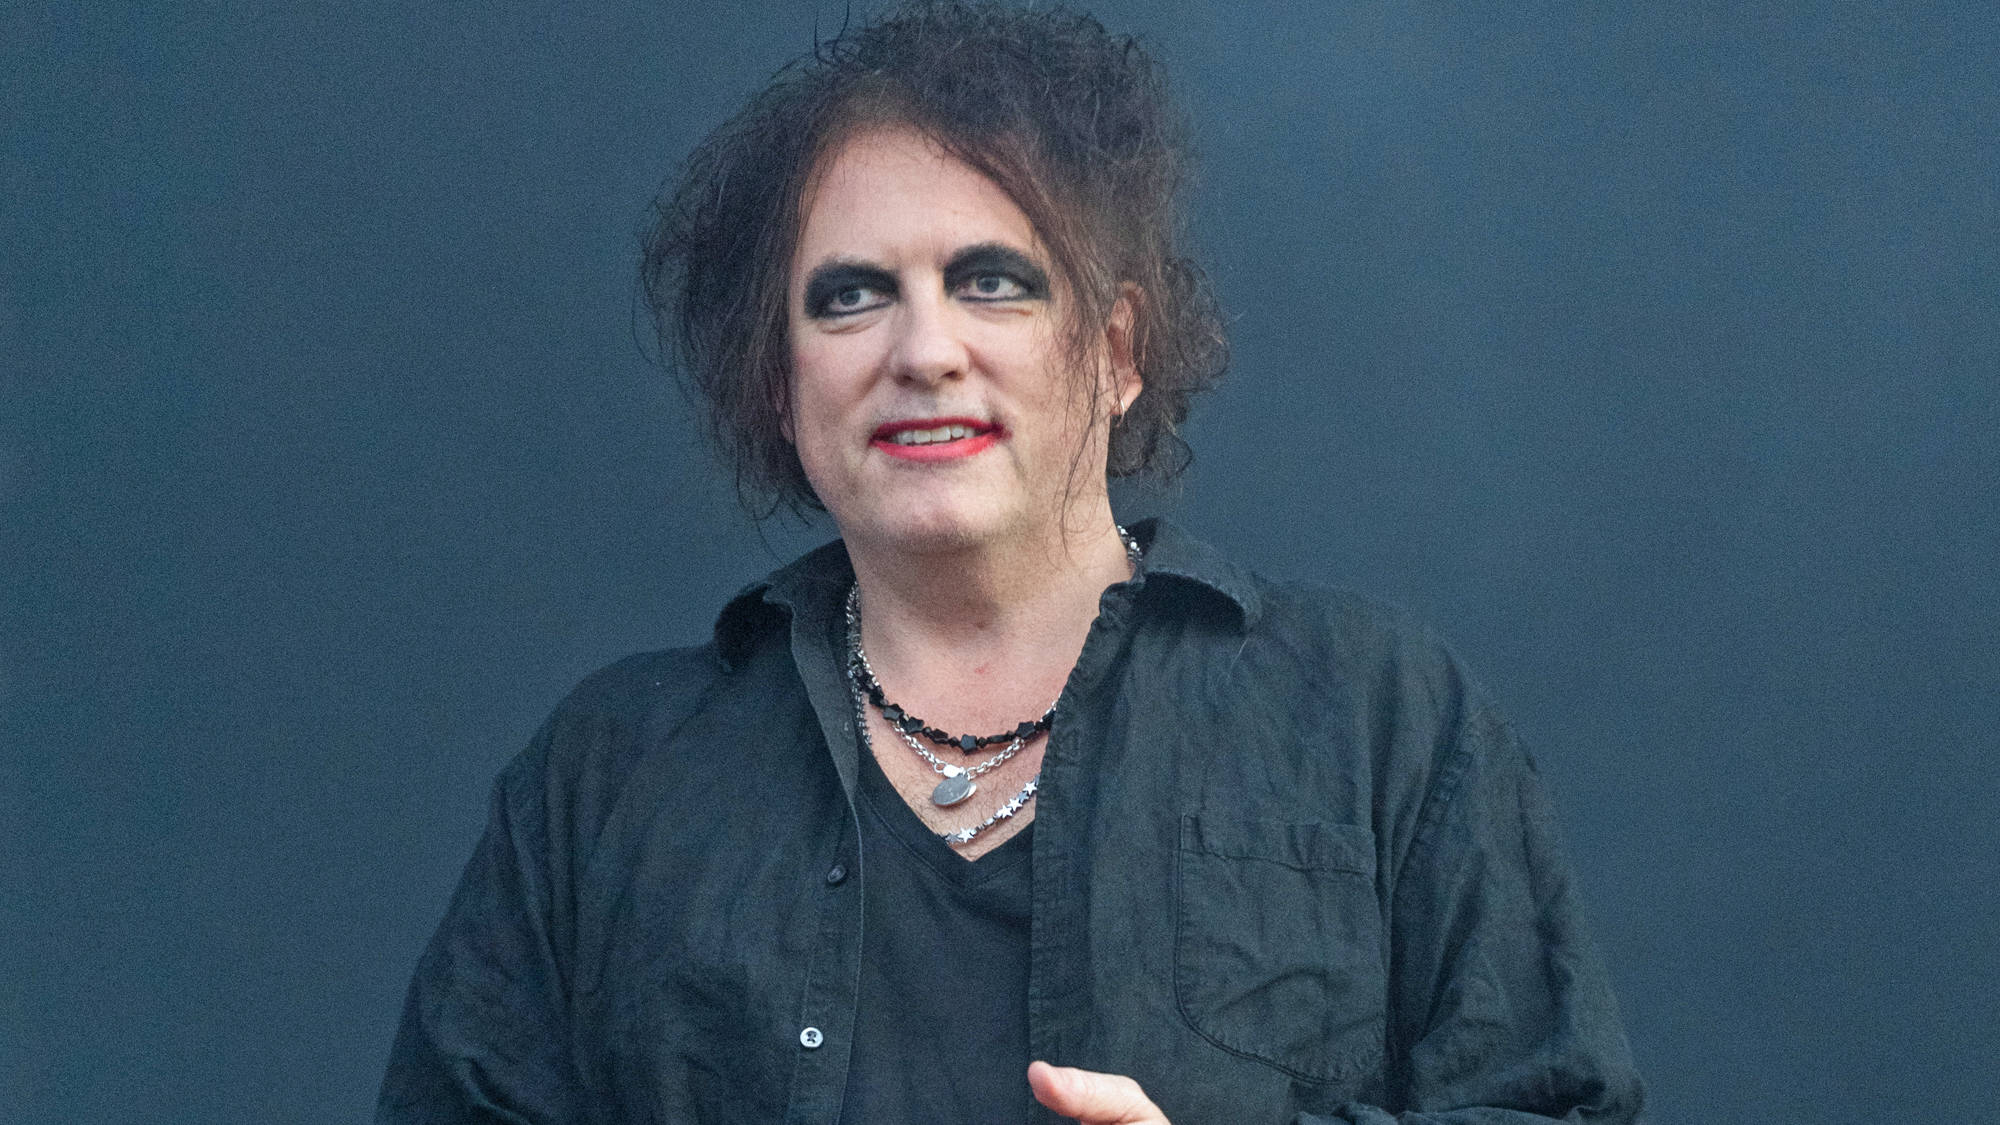 The Cure are the most Googled British band of 2019